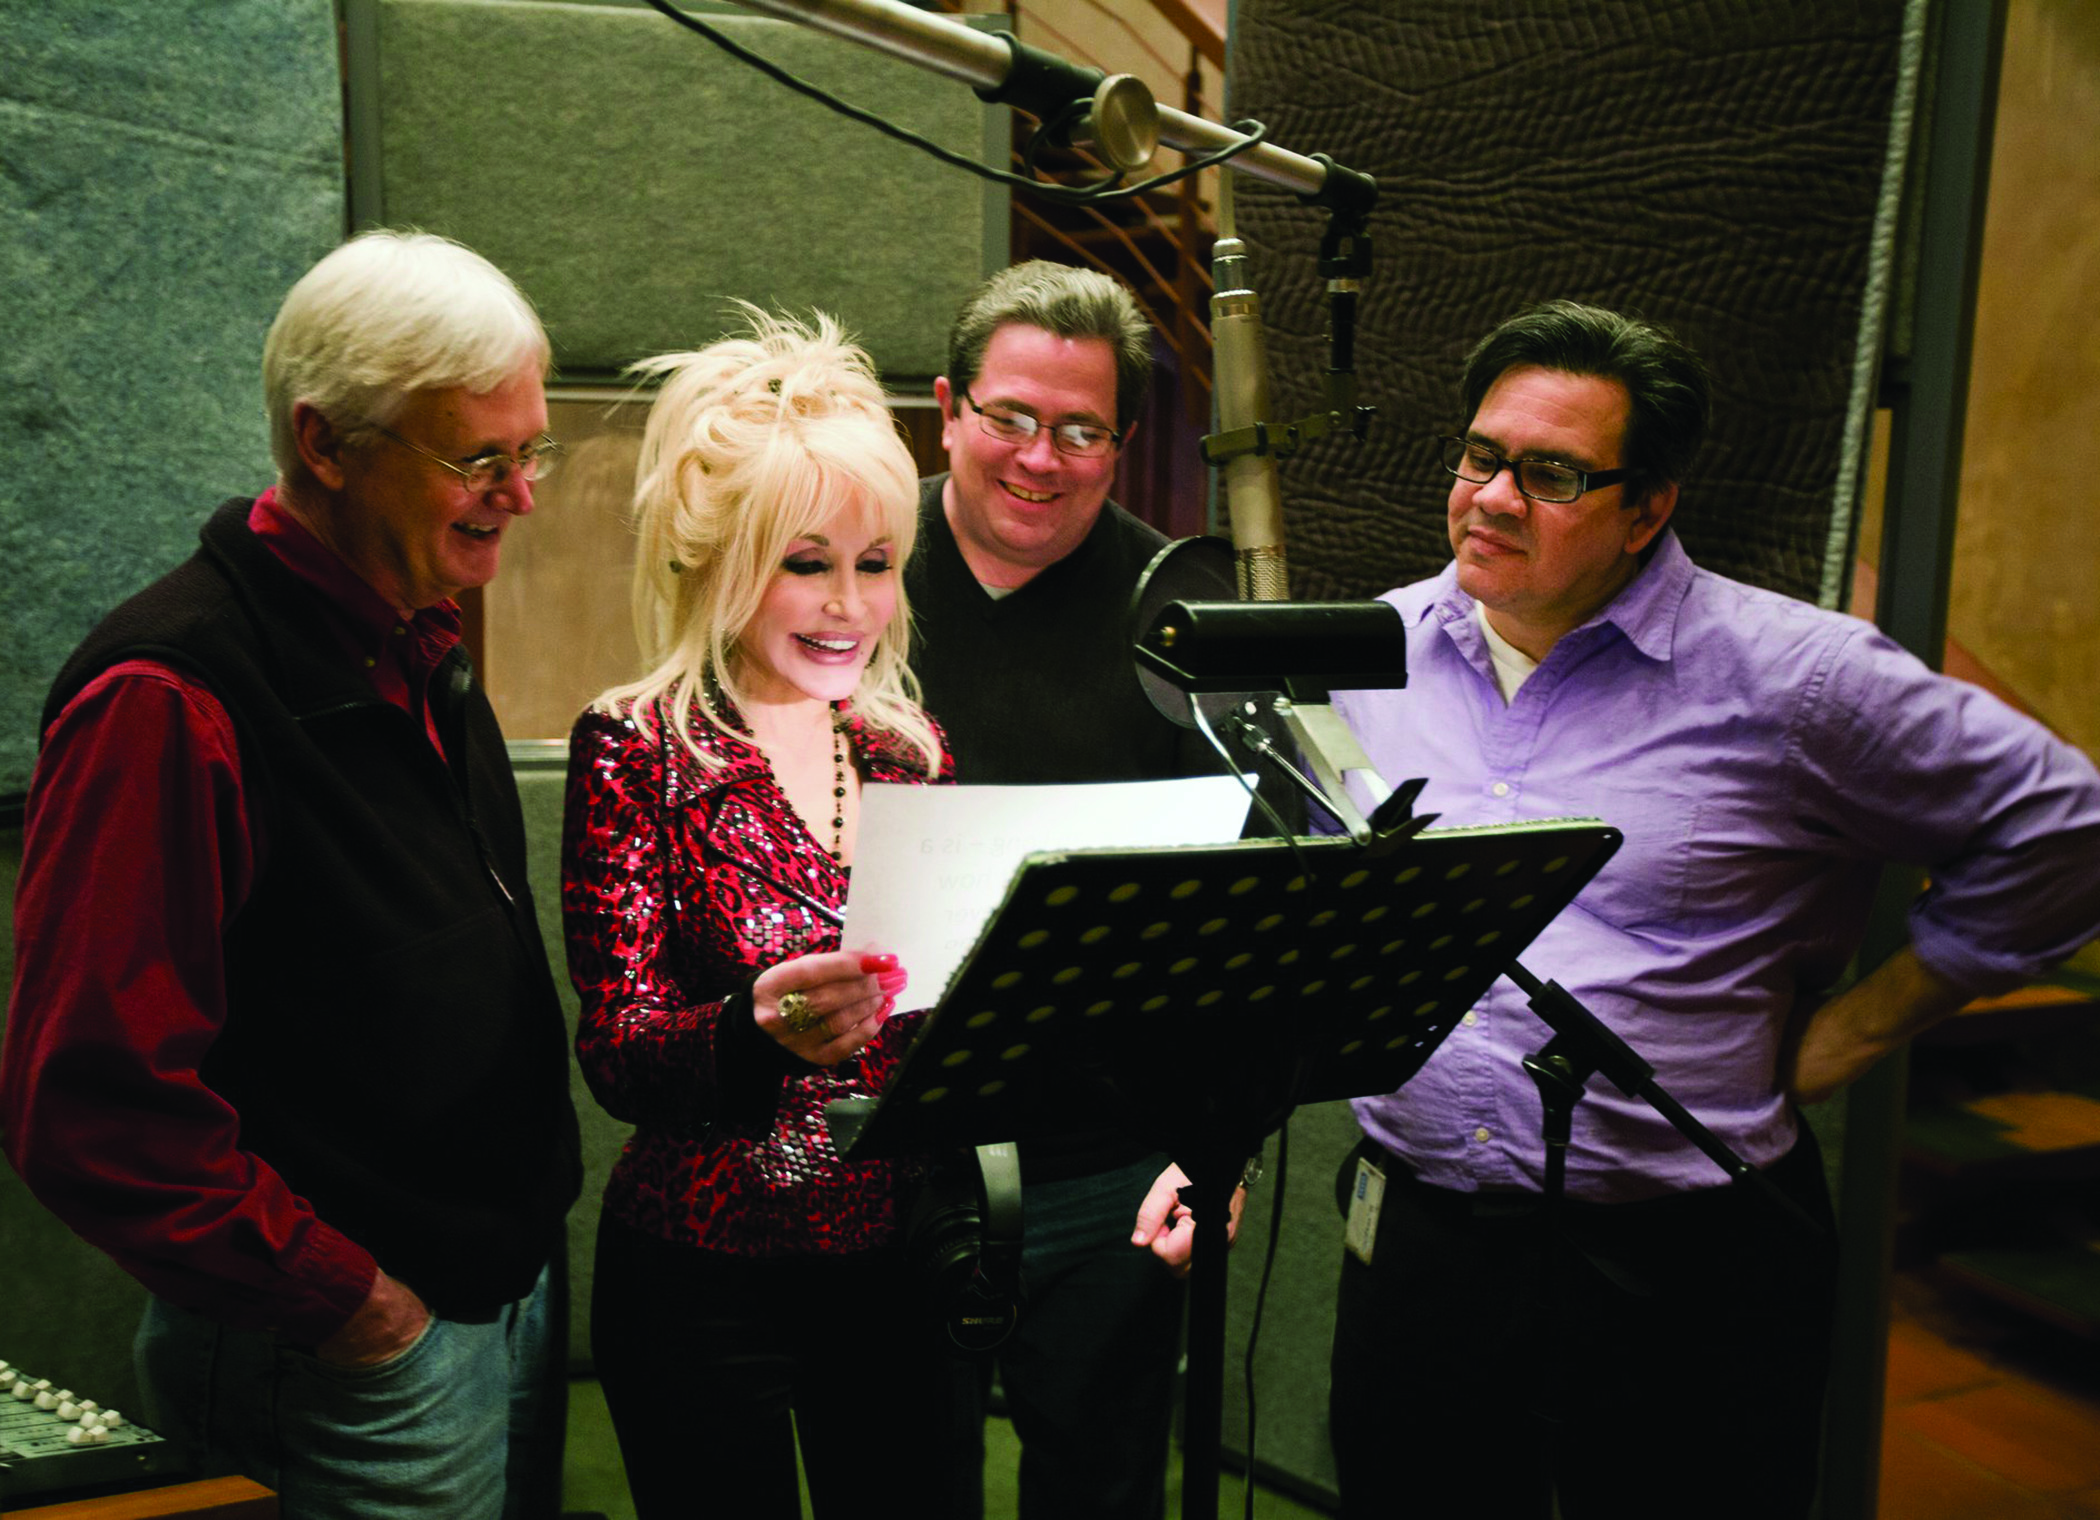 Pictured with Dolly Parton, Brian Hull '84 graduated from Ship as a theatre major and has made a career as an Emmy®-winning animator and puppeteer.